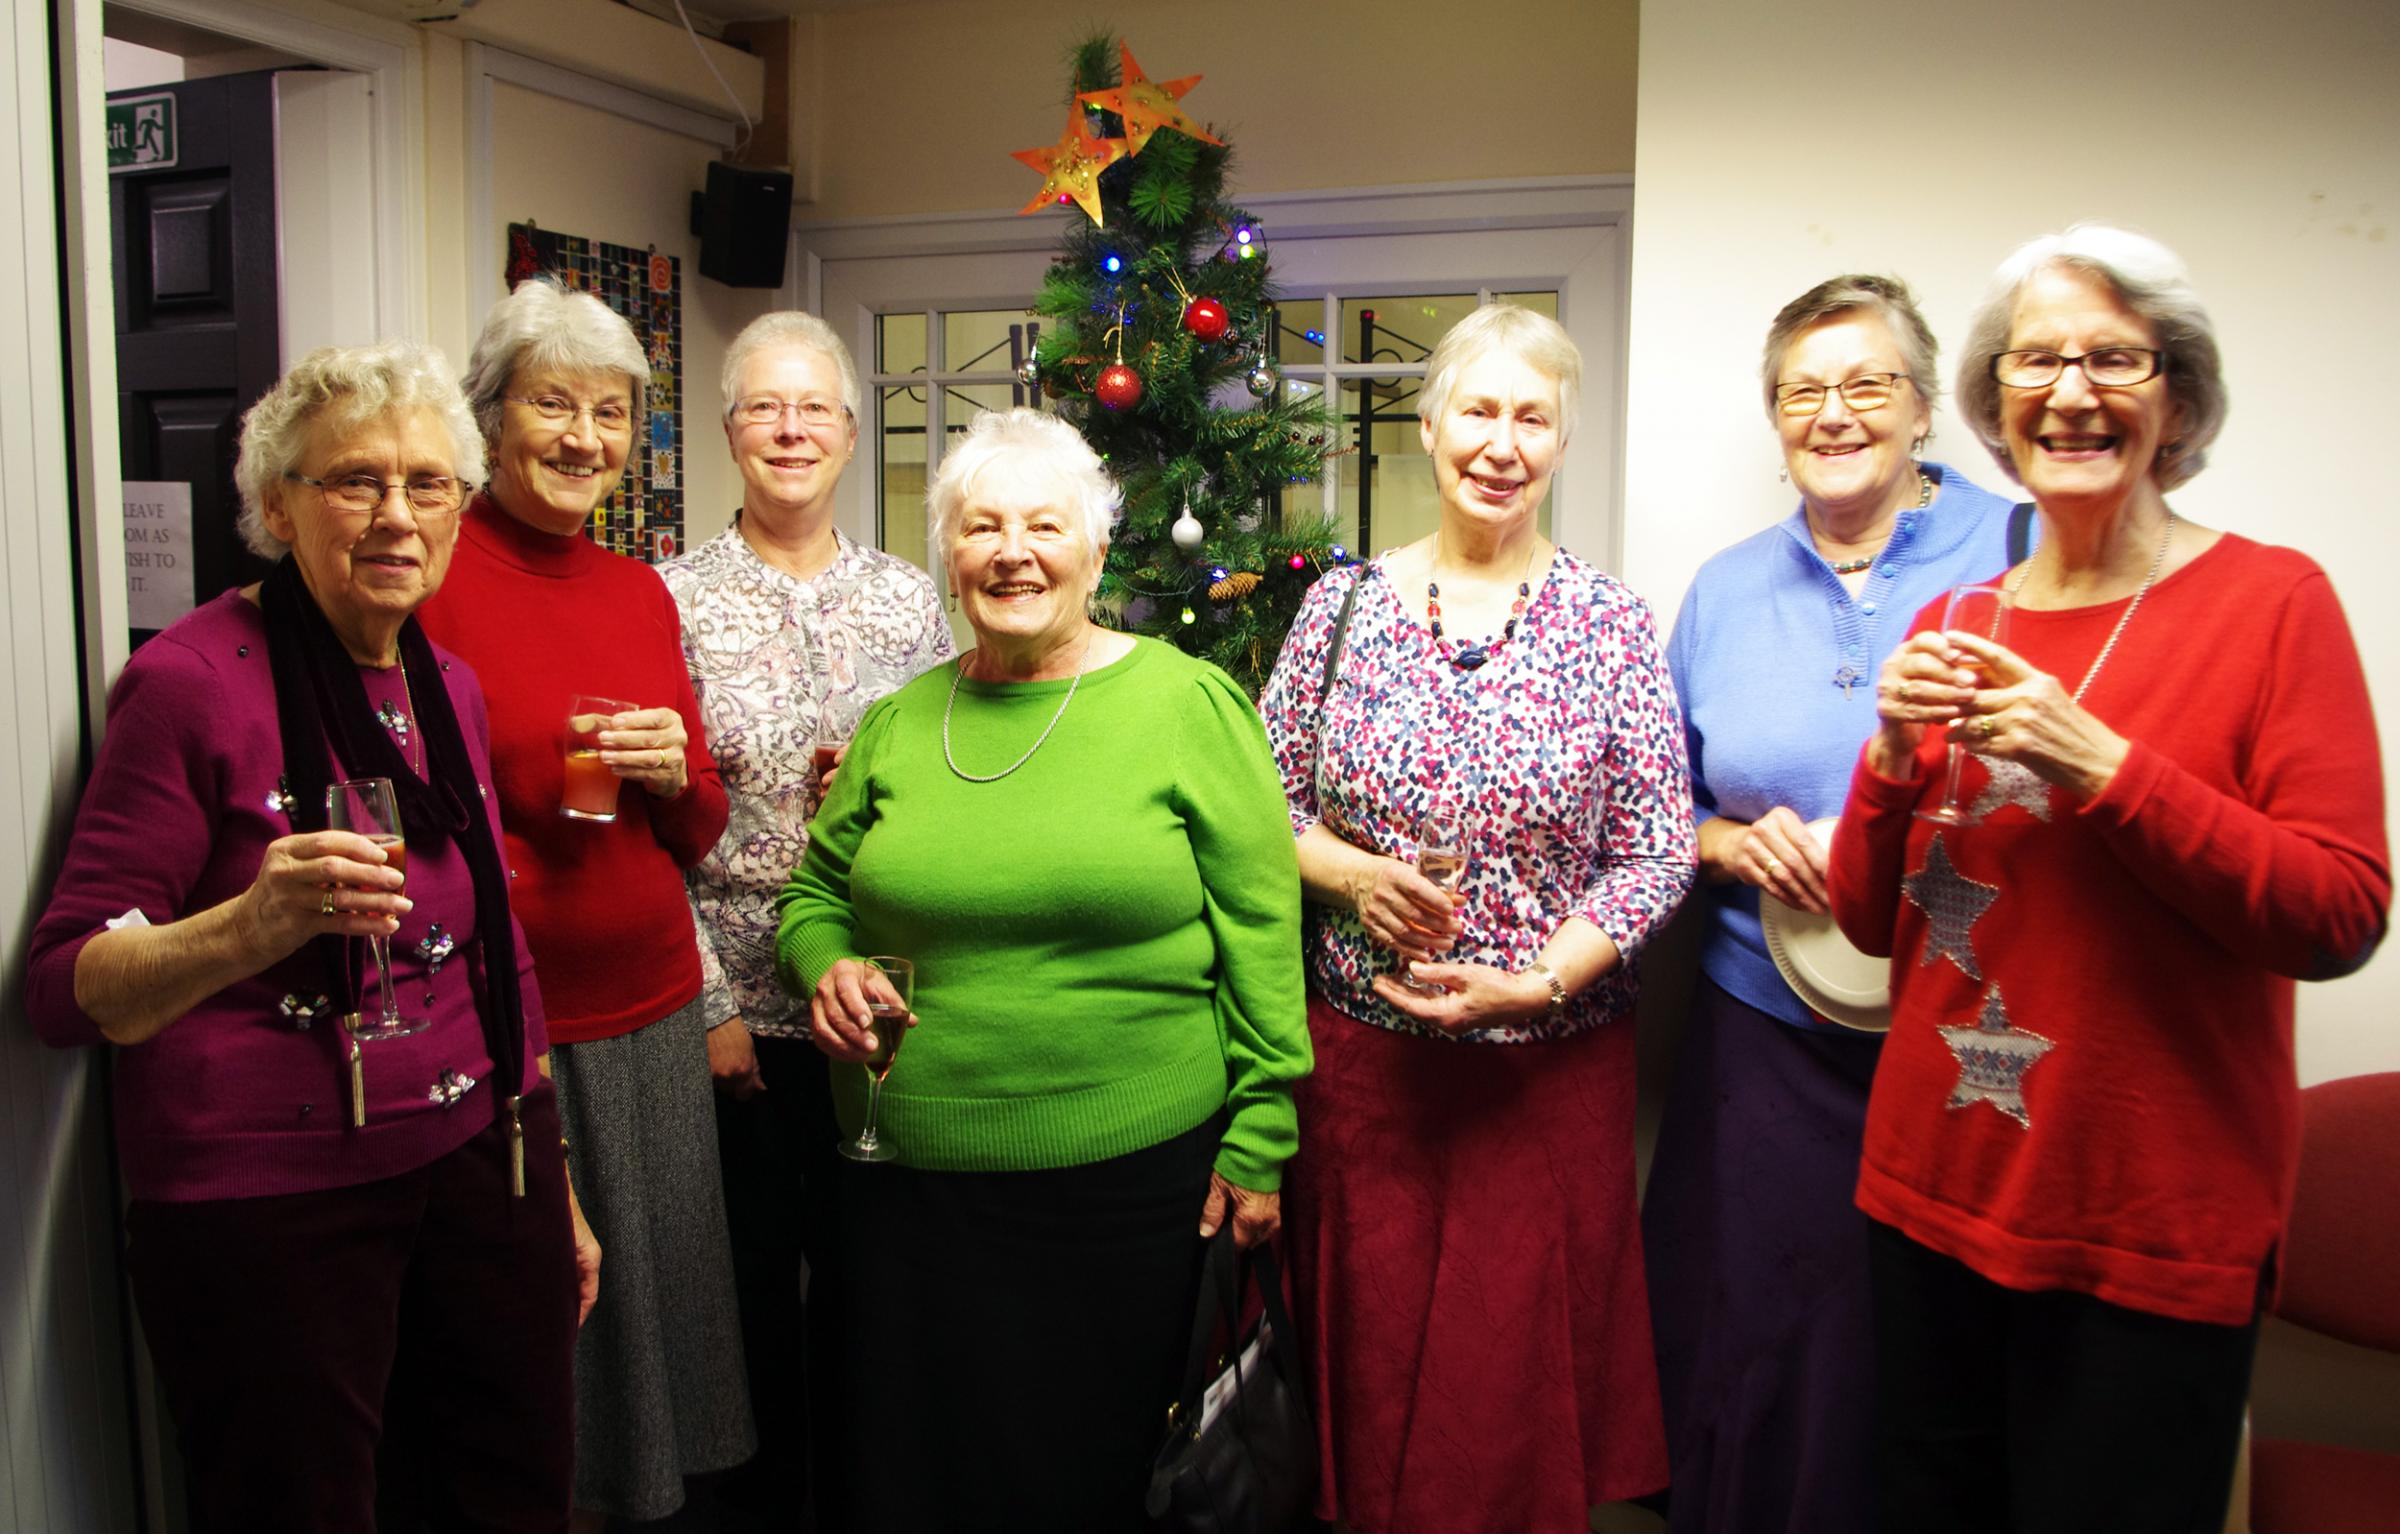 Members of Cirencester Mothers' Union who volunteer regularly at The Churn Project